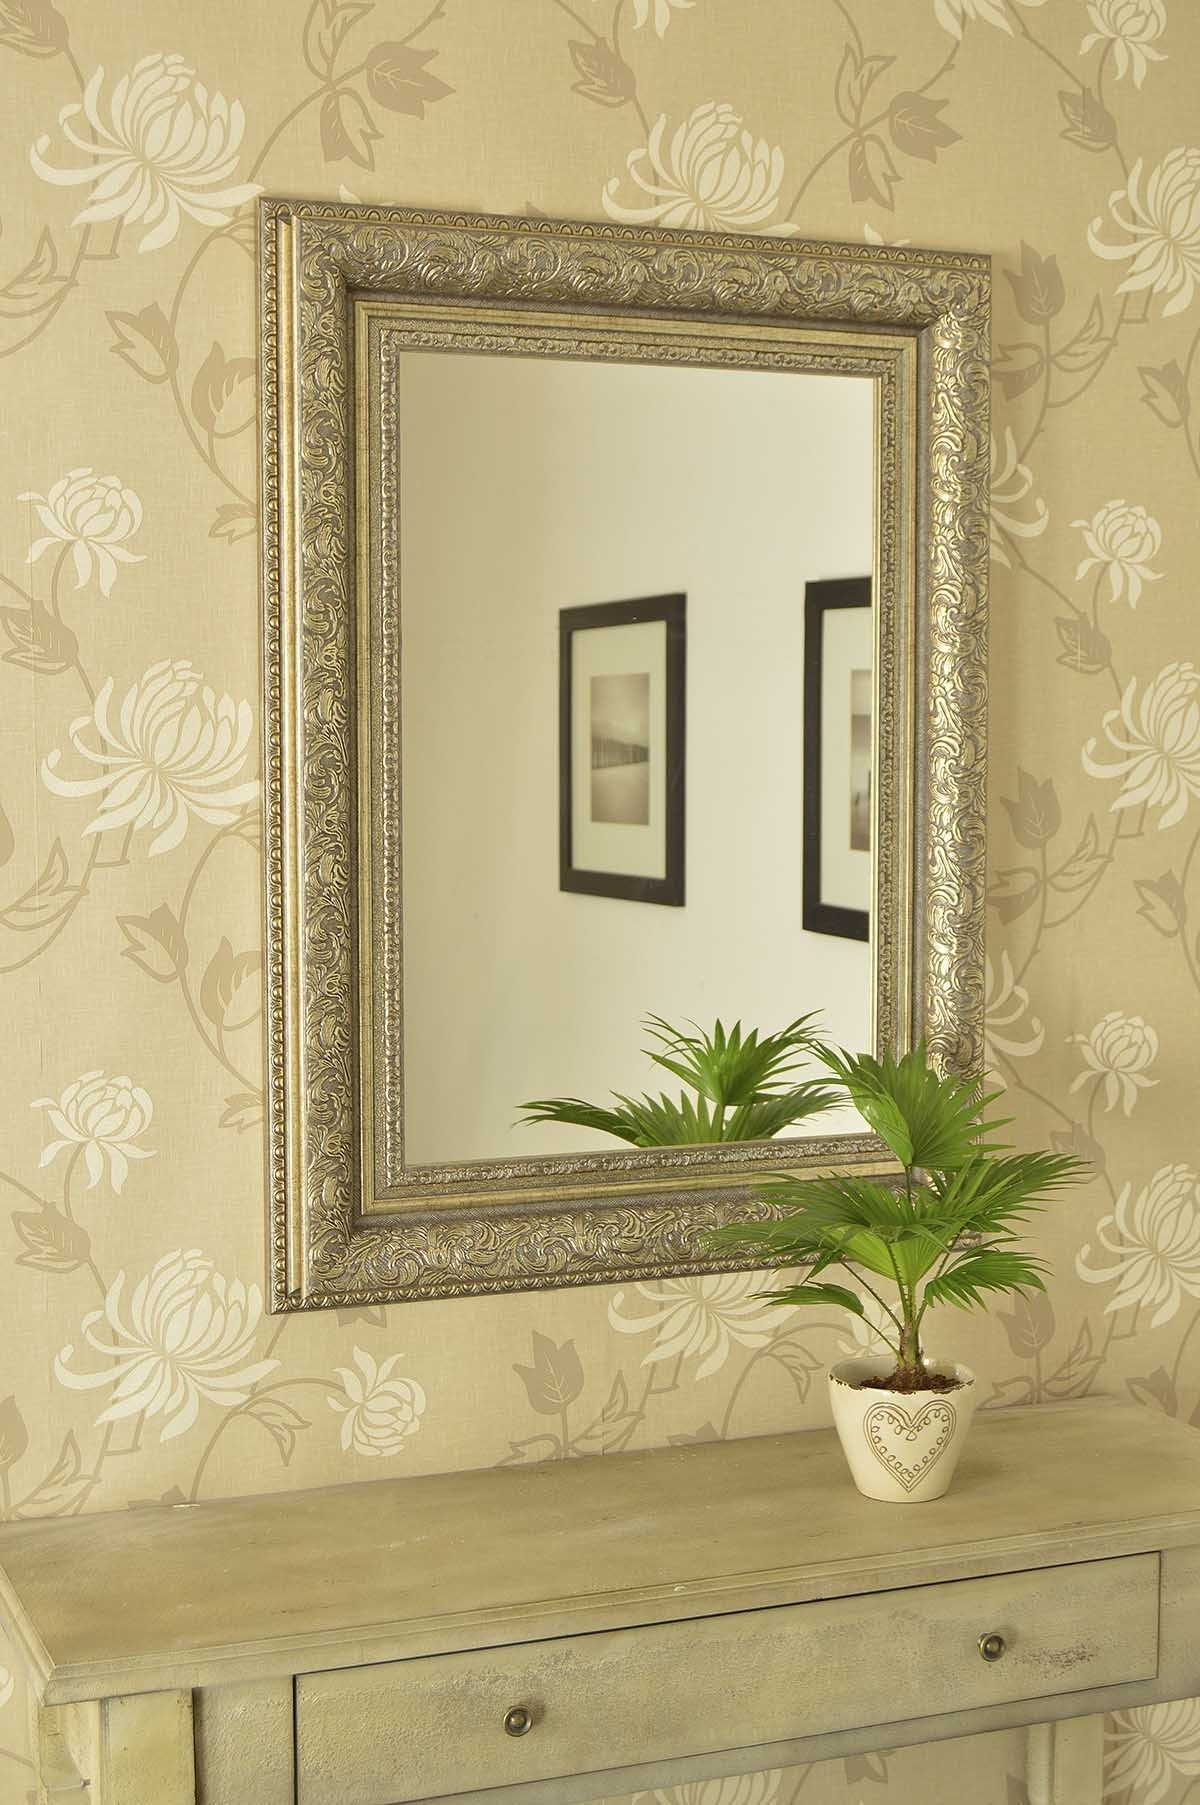 Classic Impression On Antique Wall Mirrors Vwho Intended For Cream Wall Mirror (Image 5 of 15)